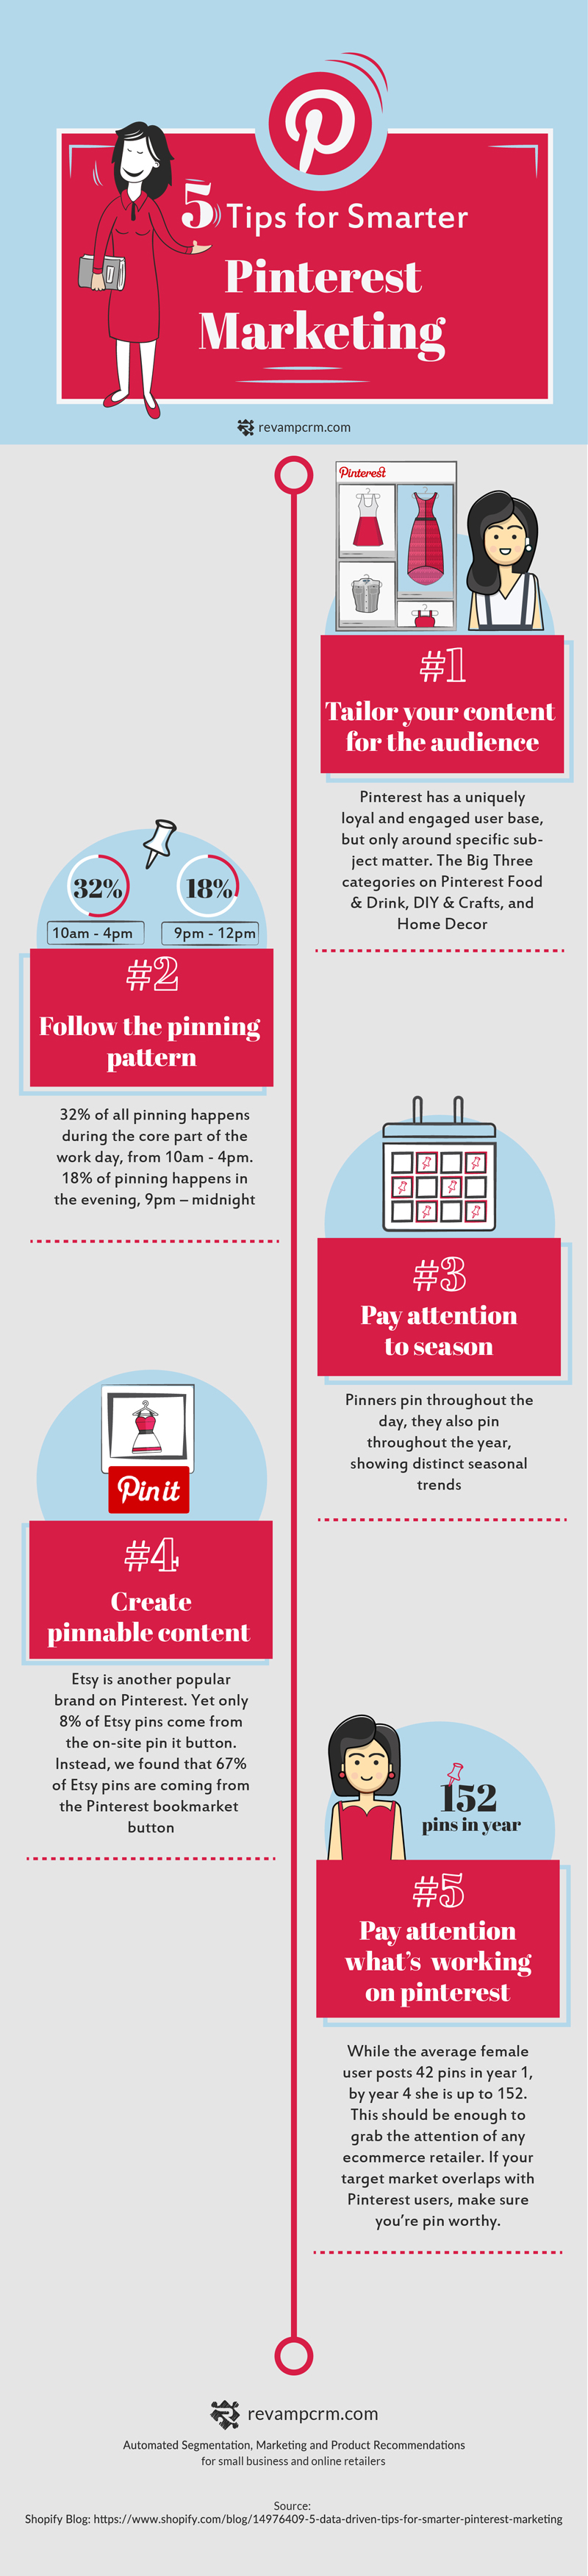 5 Tips for Smarter Pinterest Marketing - infographic